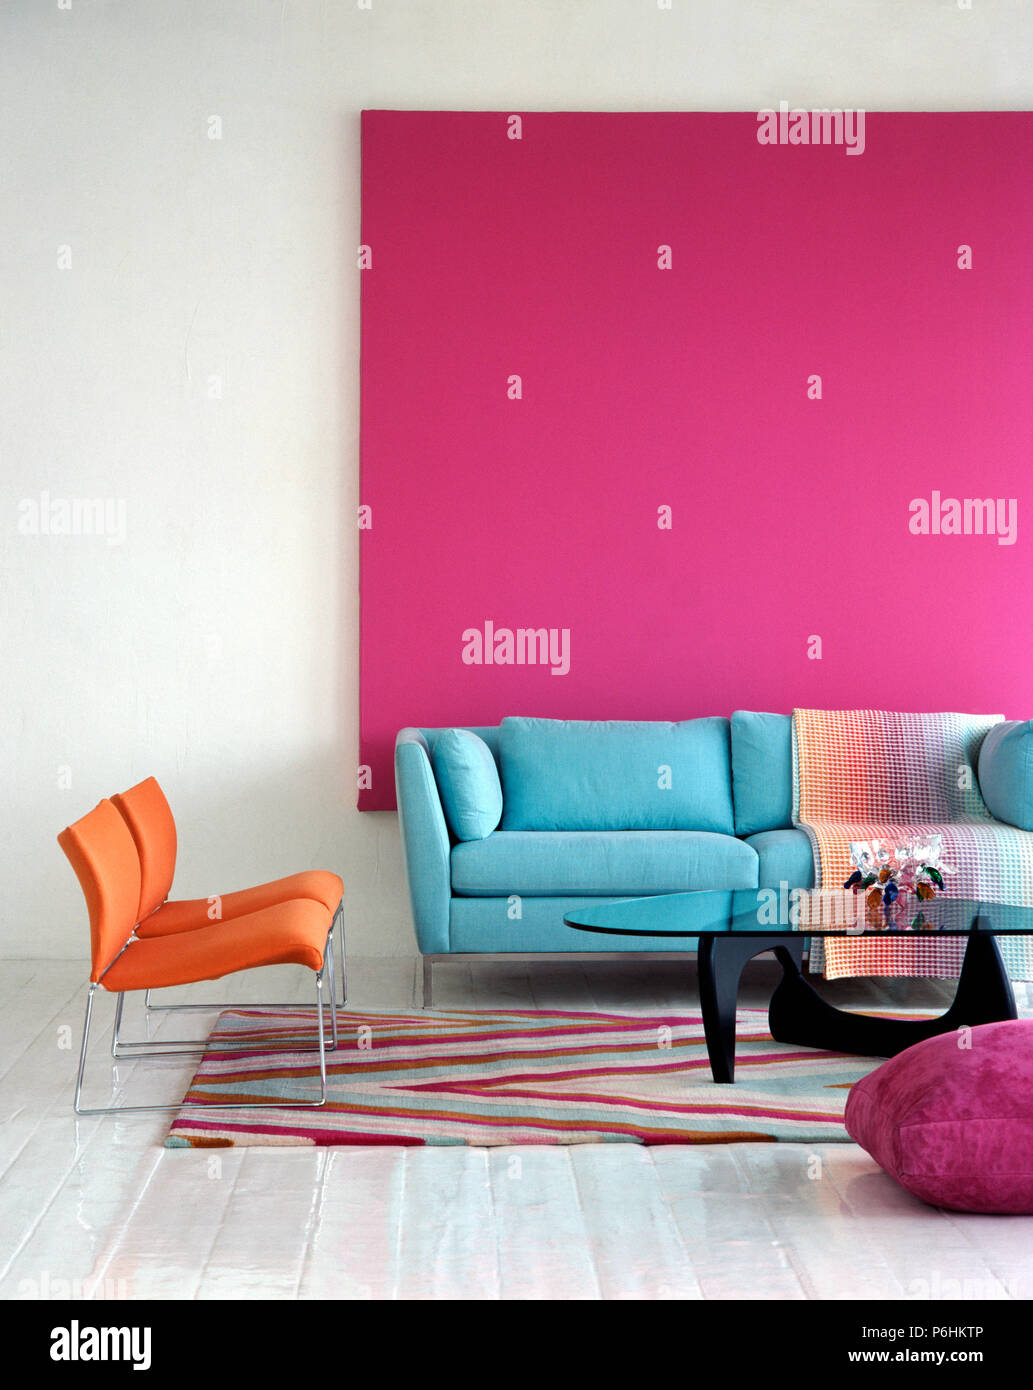 Pastel Blue Sofa Against Bright Pink Picture In Modern Living Room